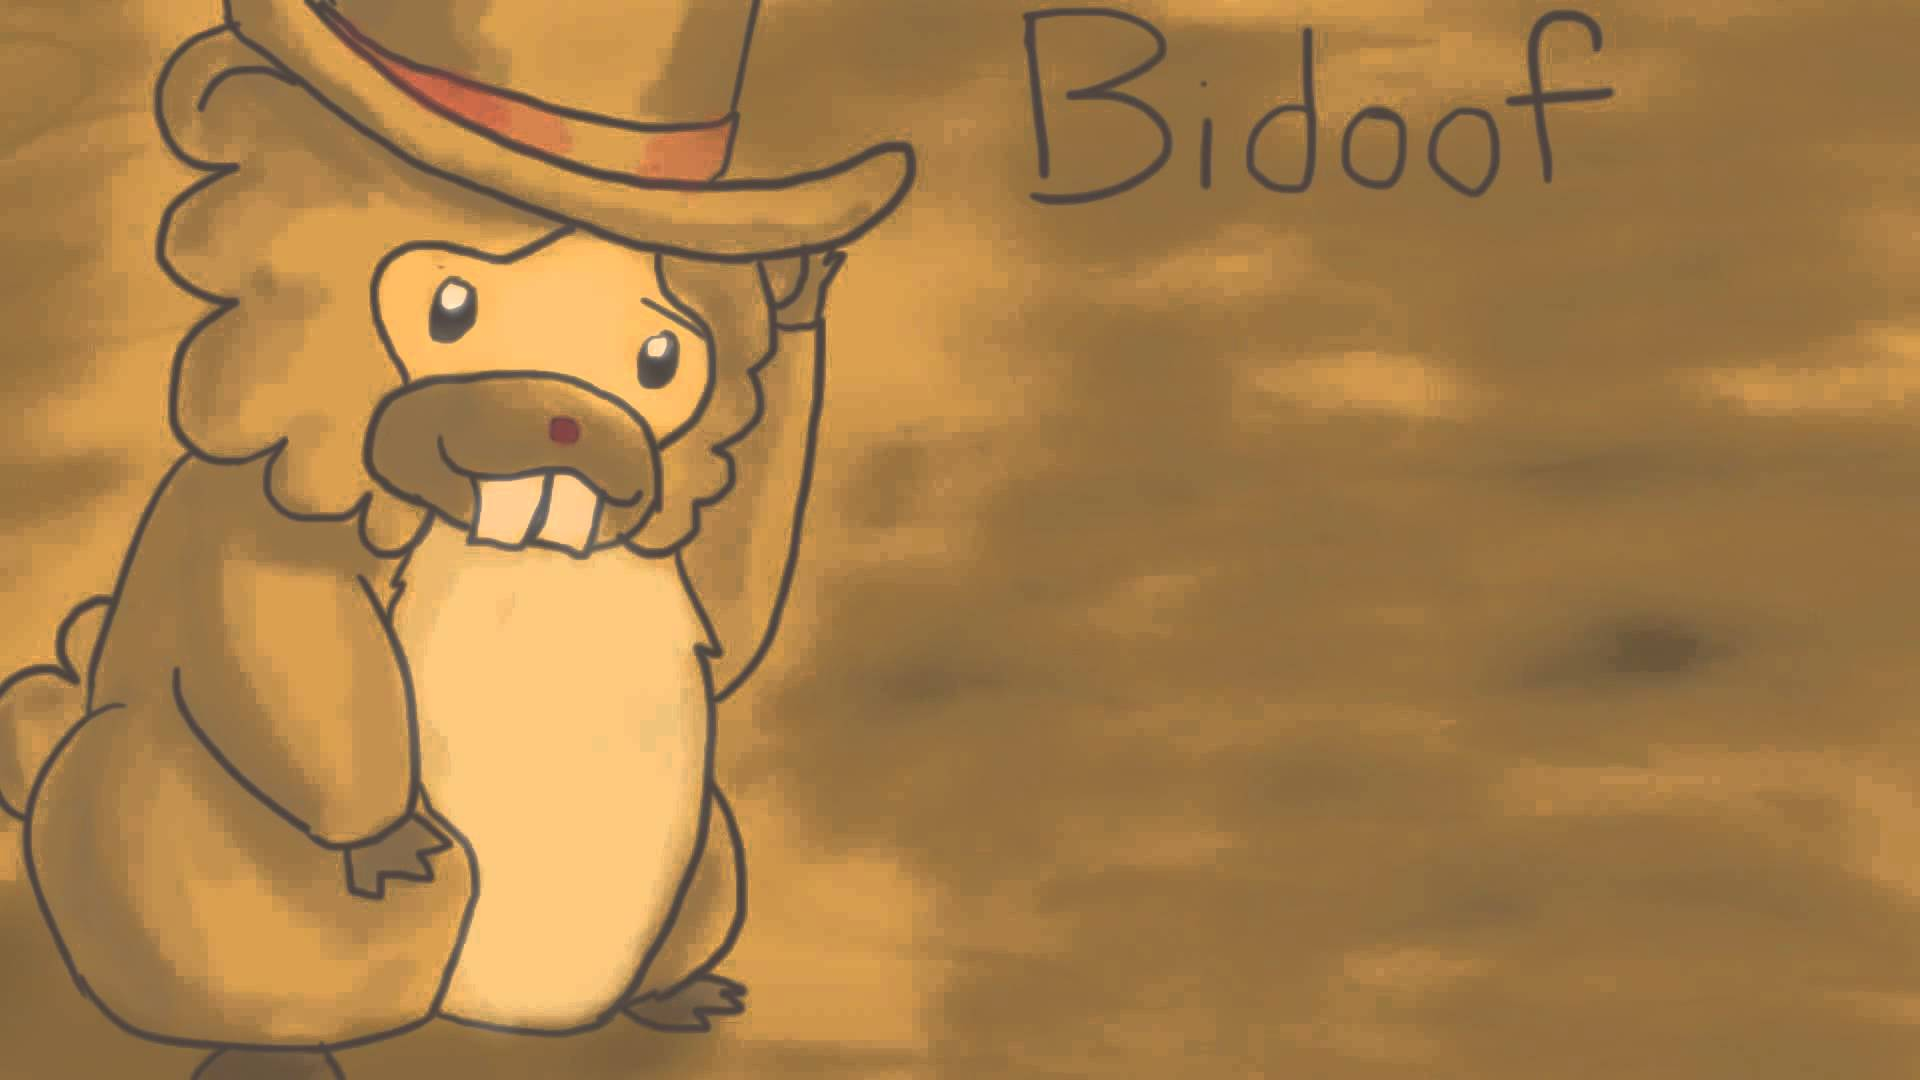 bidoof - #118733099 added by anonymous at hate when that happens